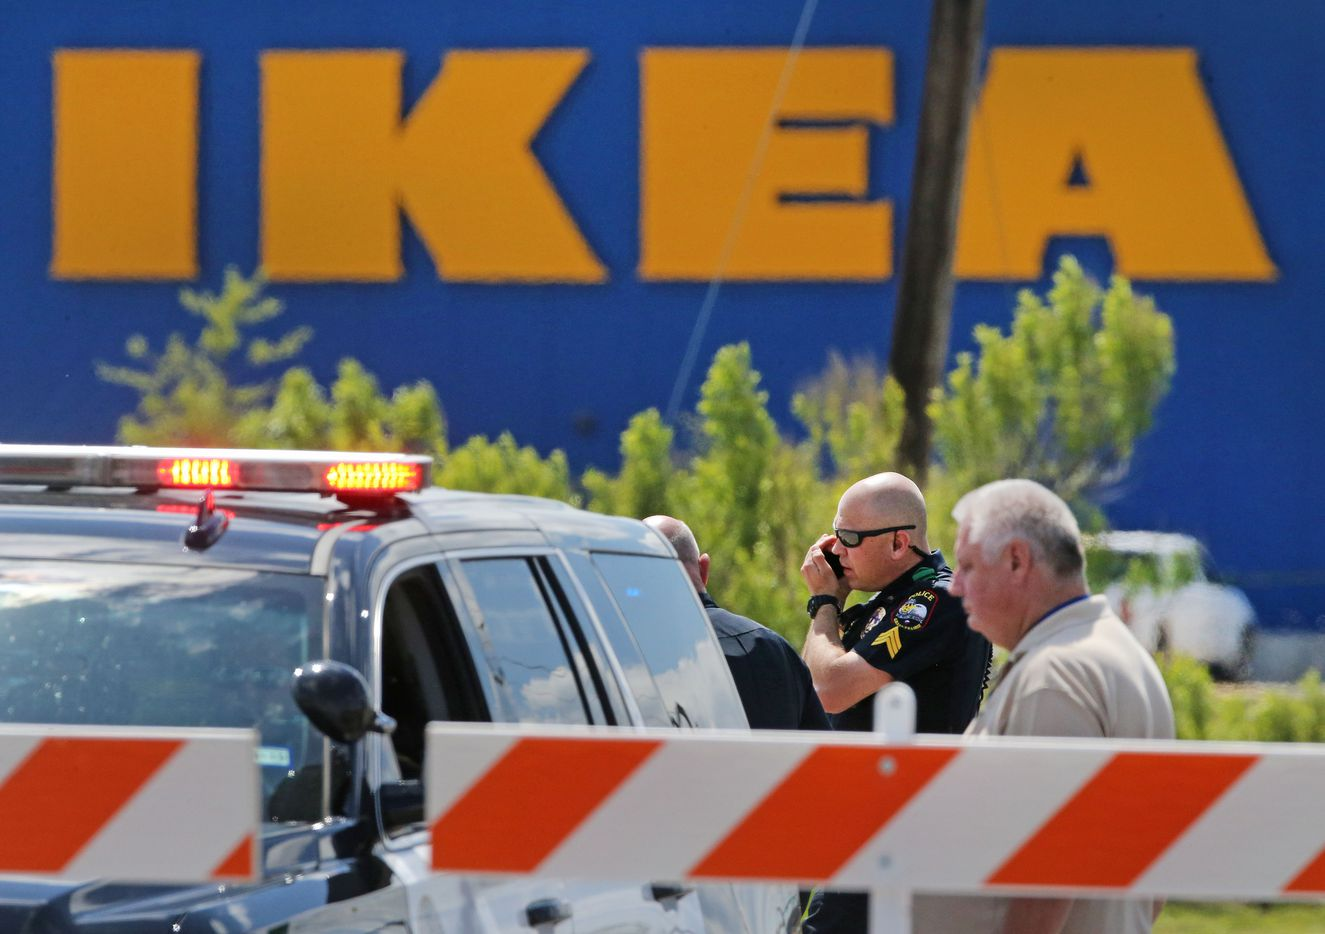 Grand Prairie police officers are pictured on the scene of a confrontation with a man with a gun near the Ikea store.